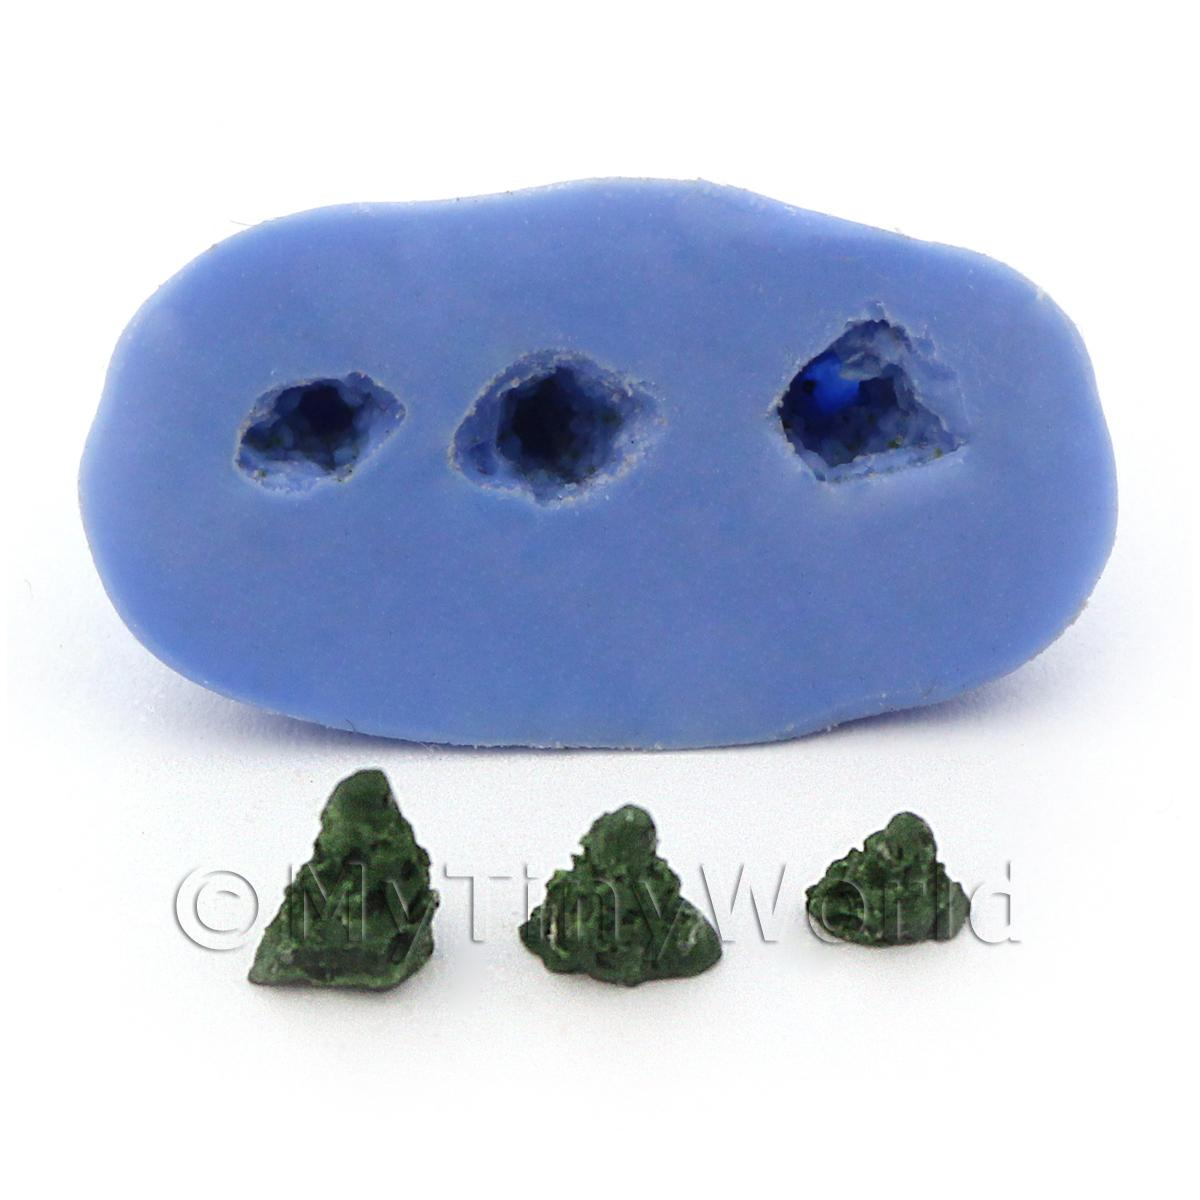 Dolls House 3 Piece Reusable Christmas Trees Silicone Mould